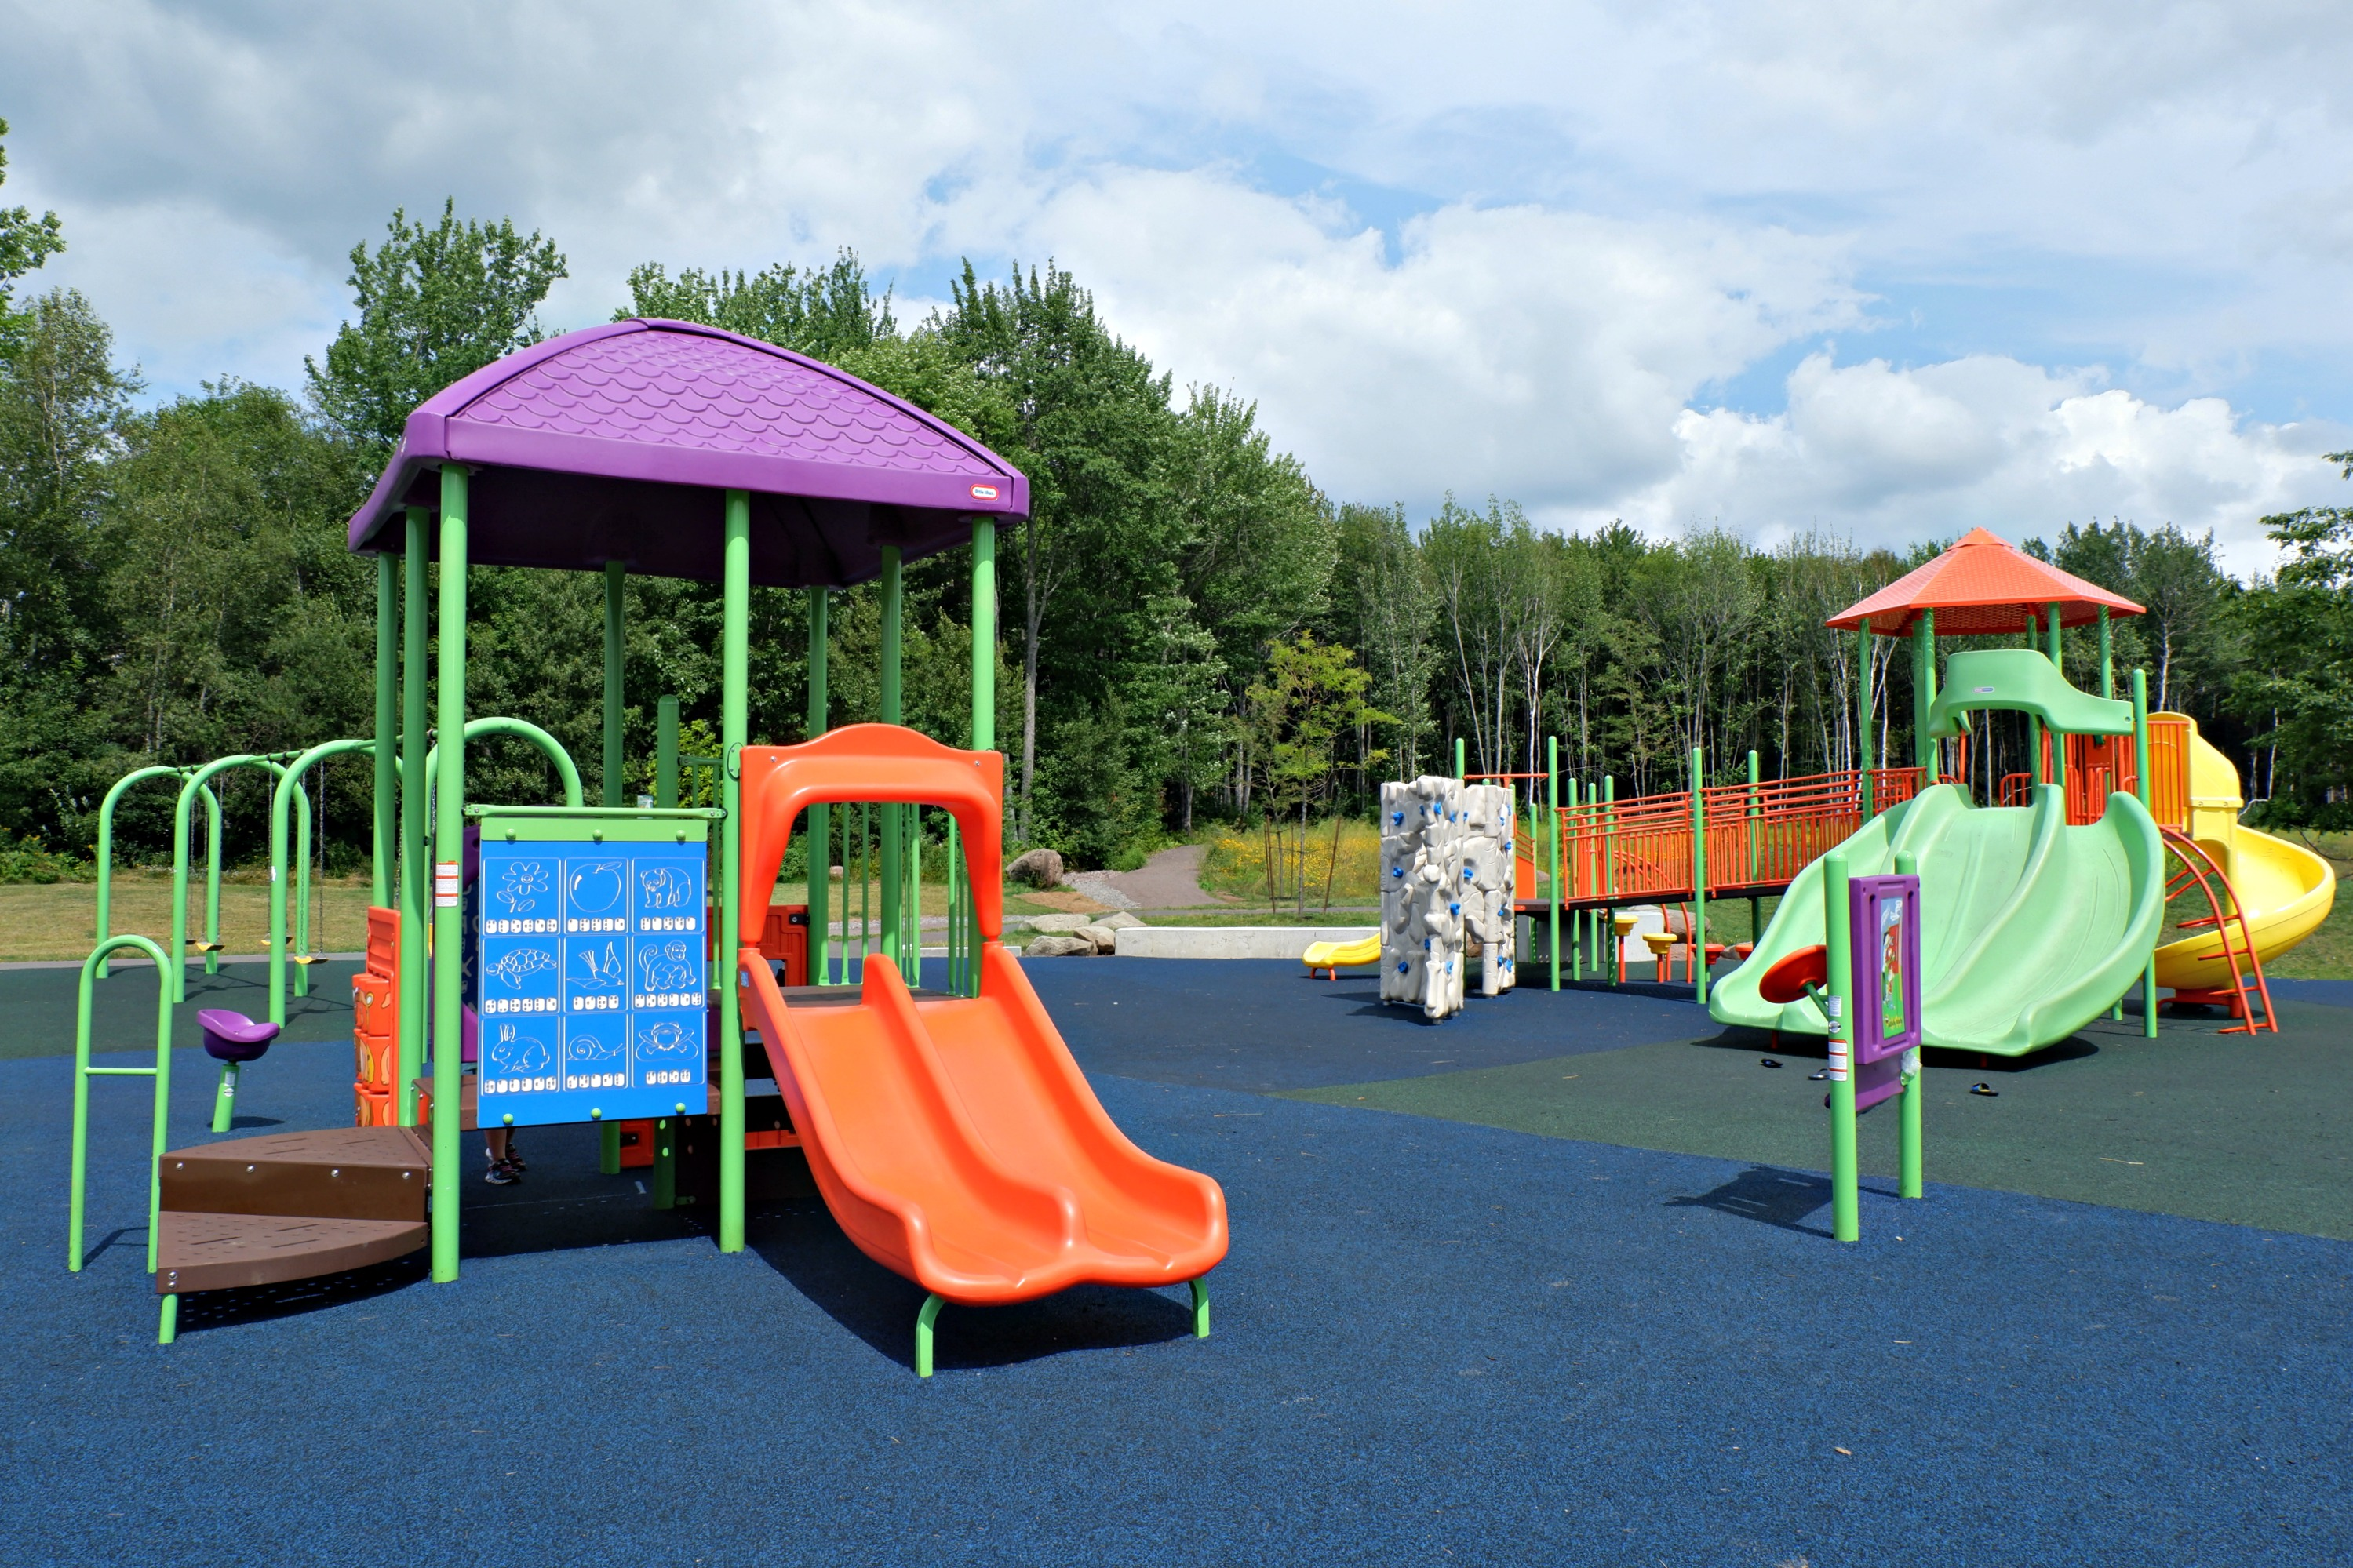 fairview knoll playground park moncton splash pad pickle planet near highway trans canada new brunswick play structures